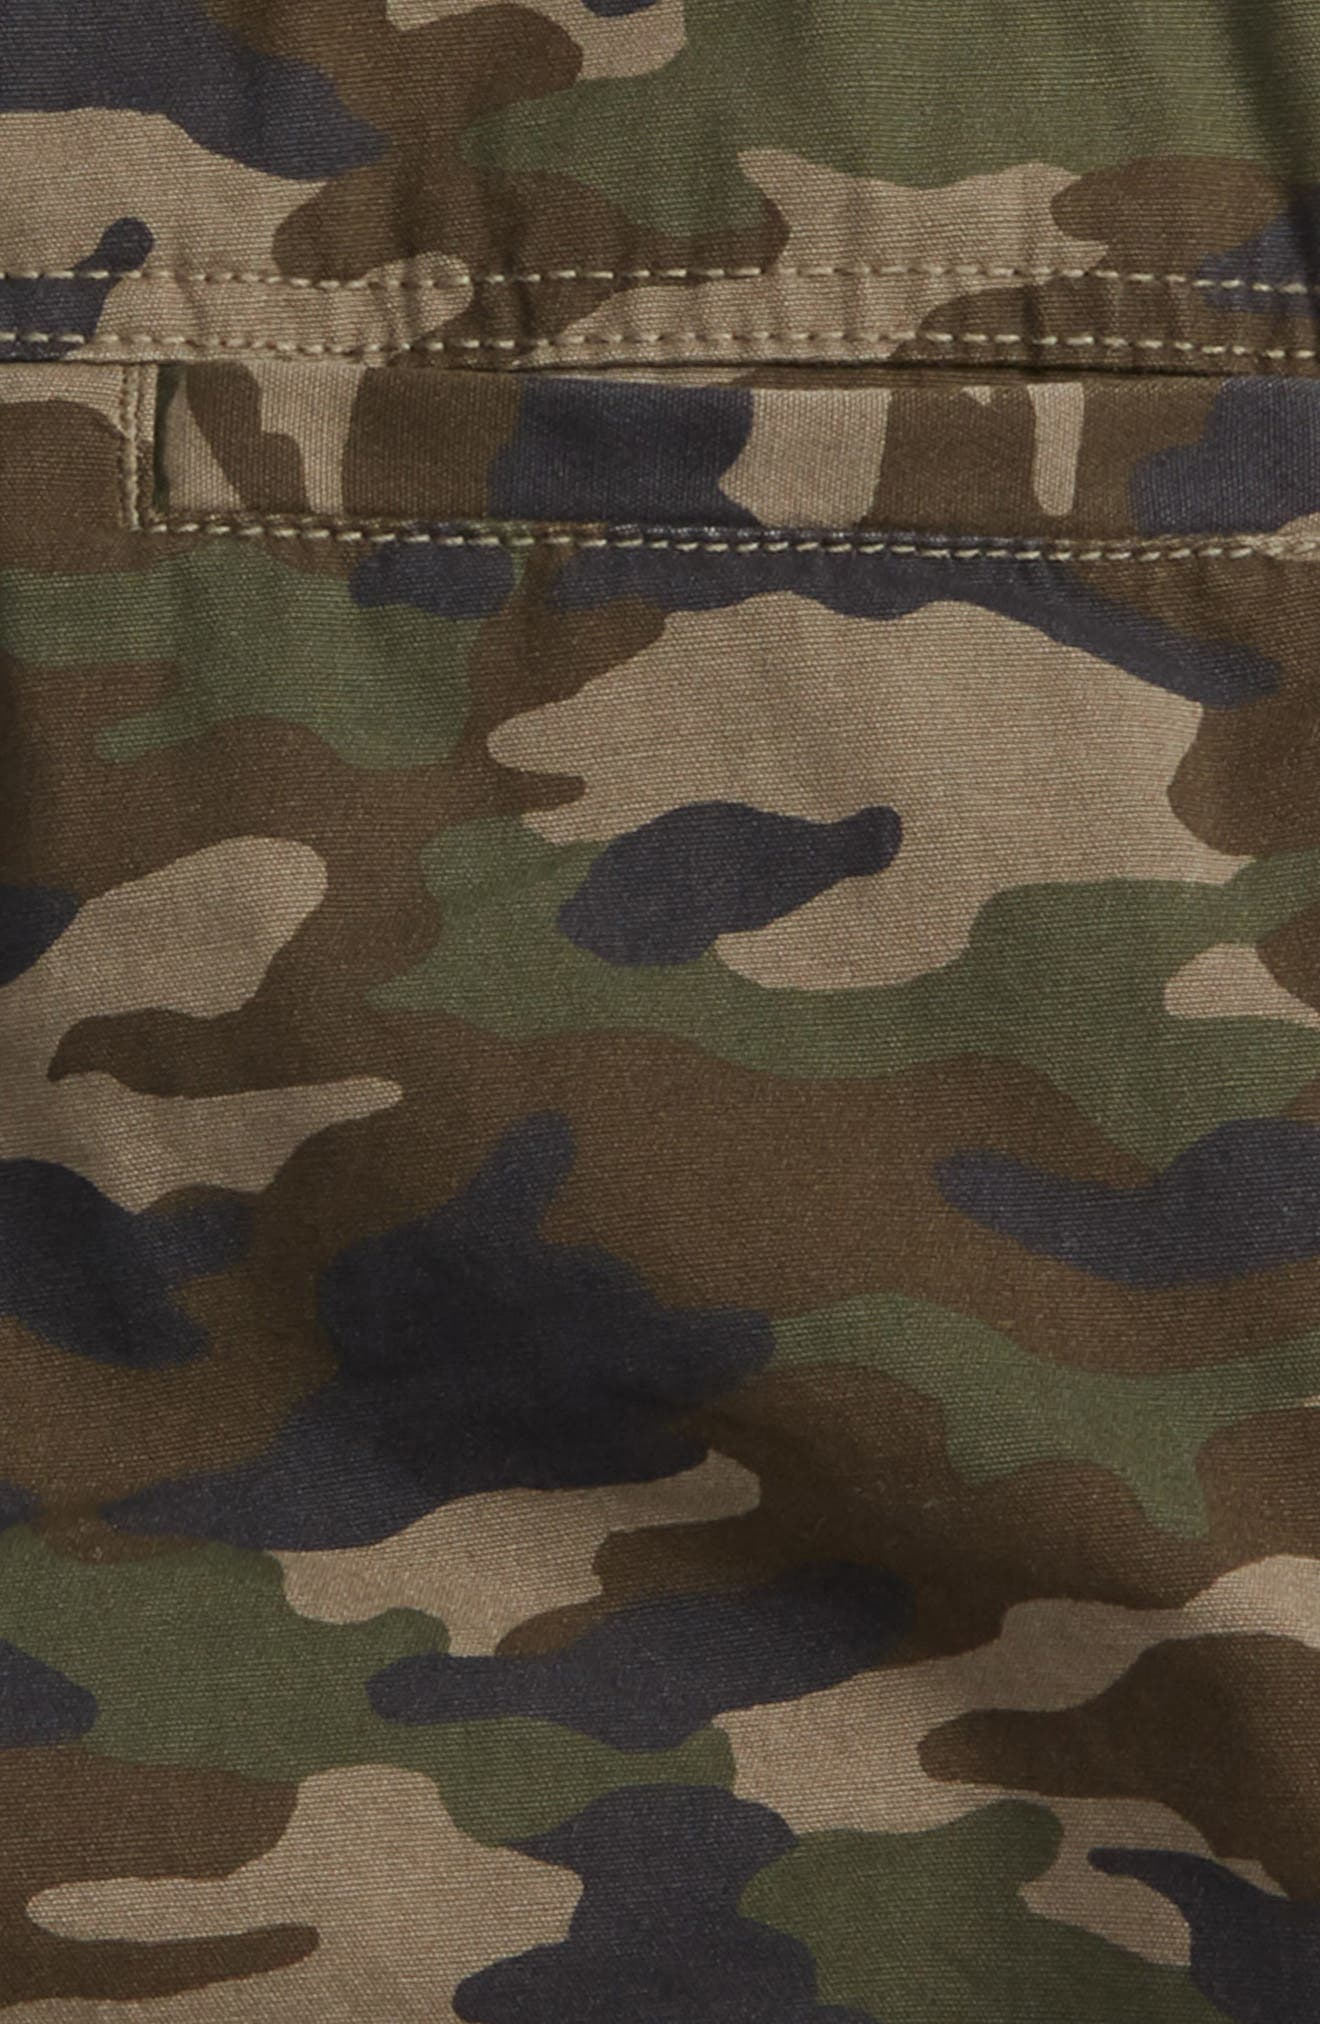 Camo Cargo Shorts,                             Alternate thumbnail 3, color,                             318